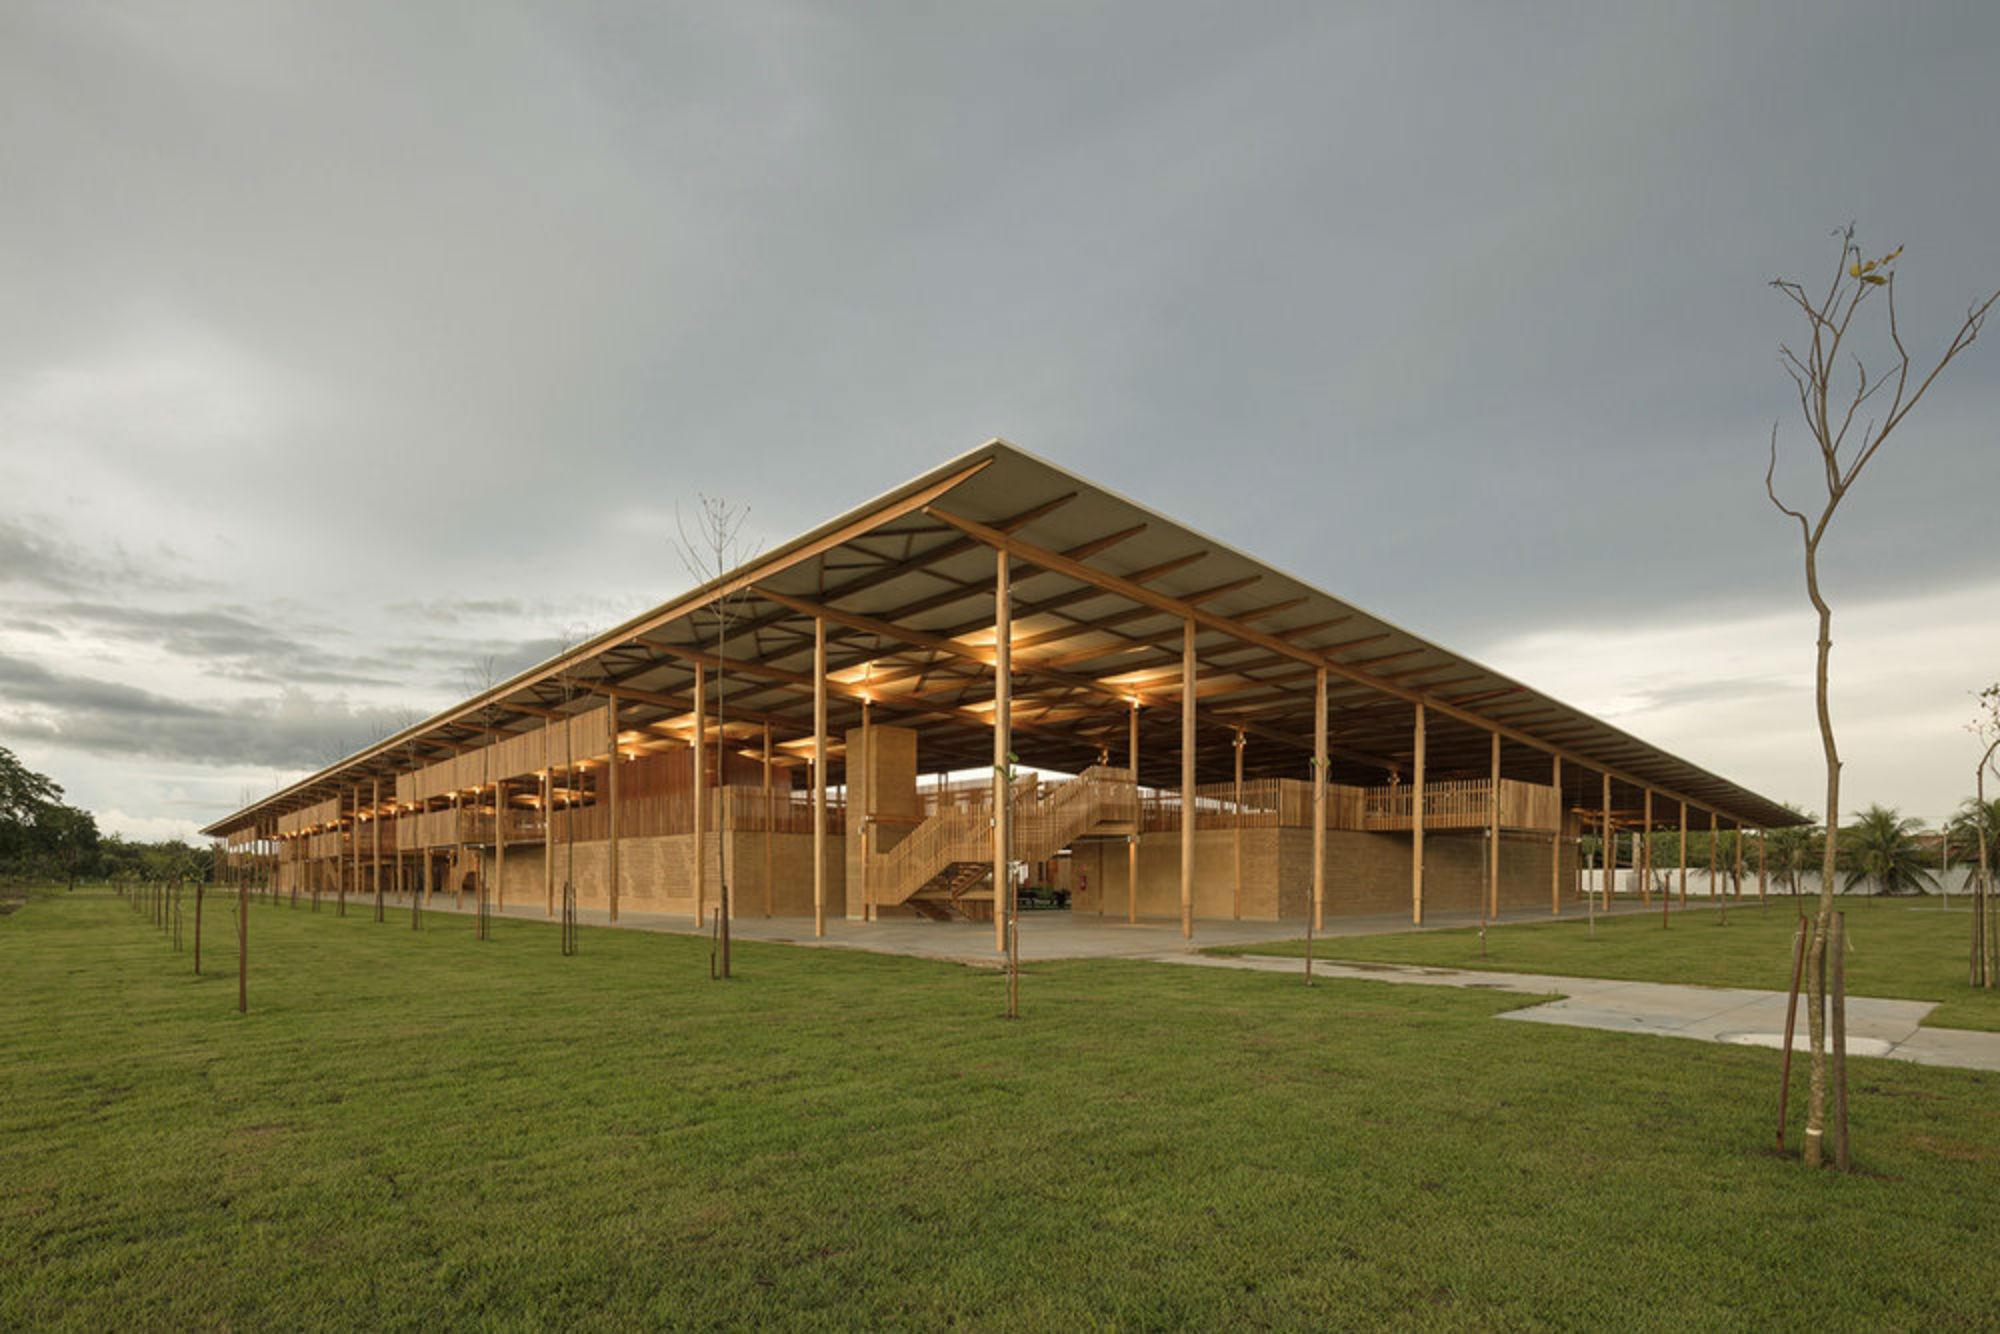 Brazilian project wins international architecture award